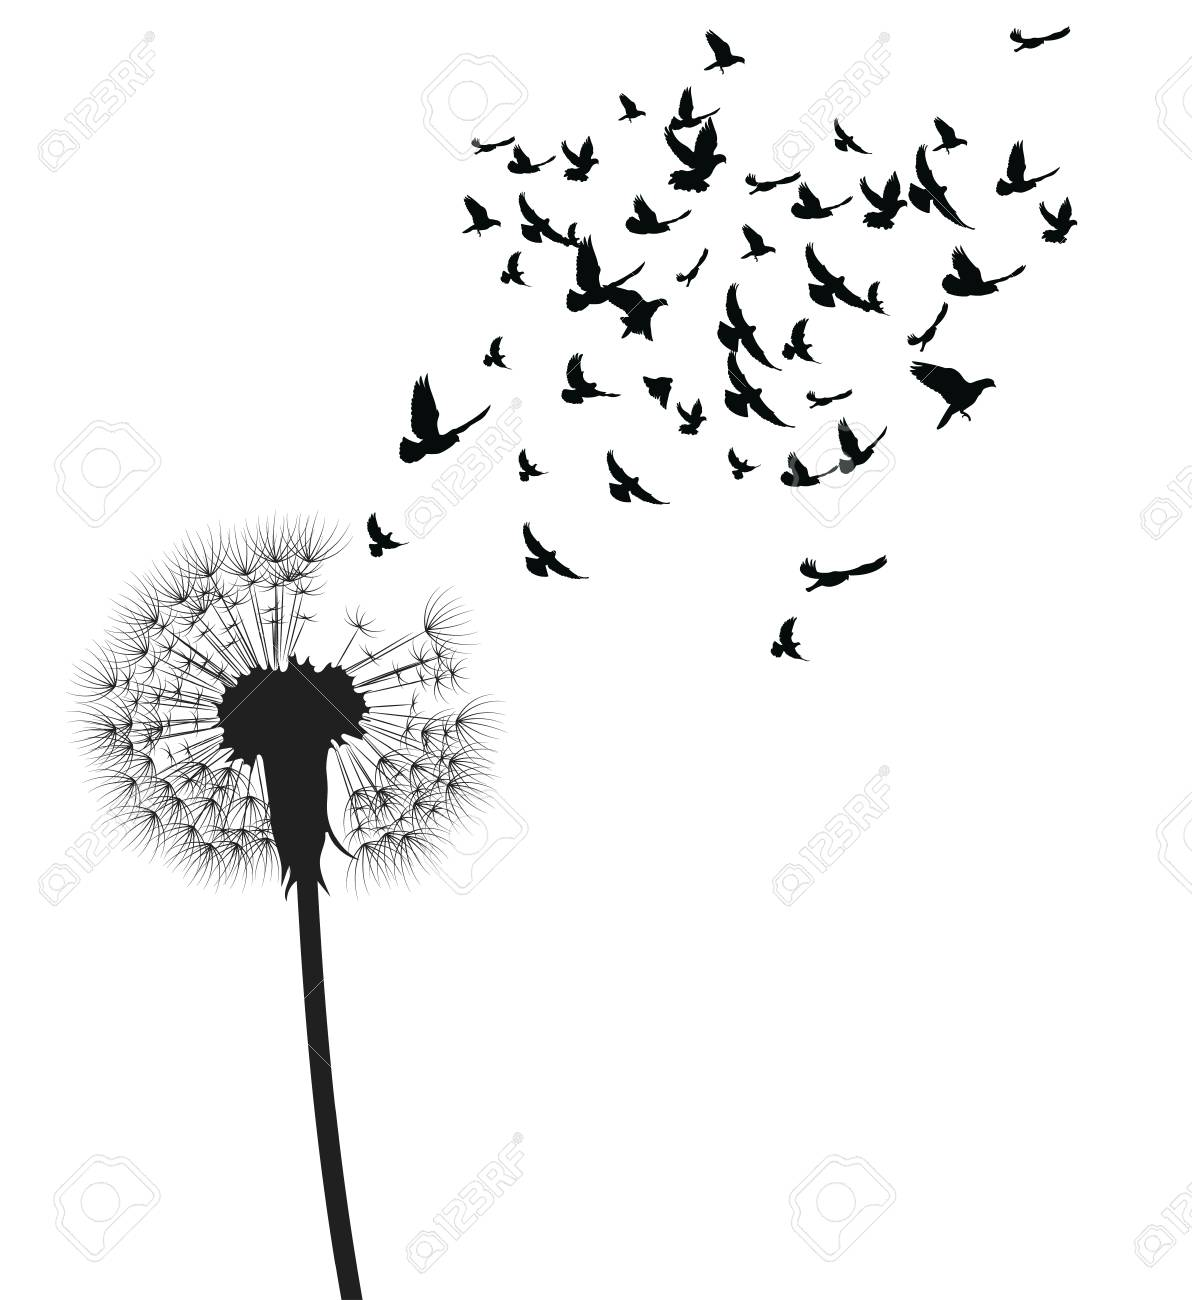 Silhouette Of A Dandelion With Flying Seeds Black Contour Of